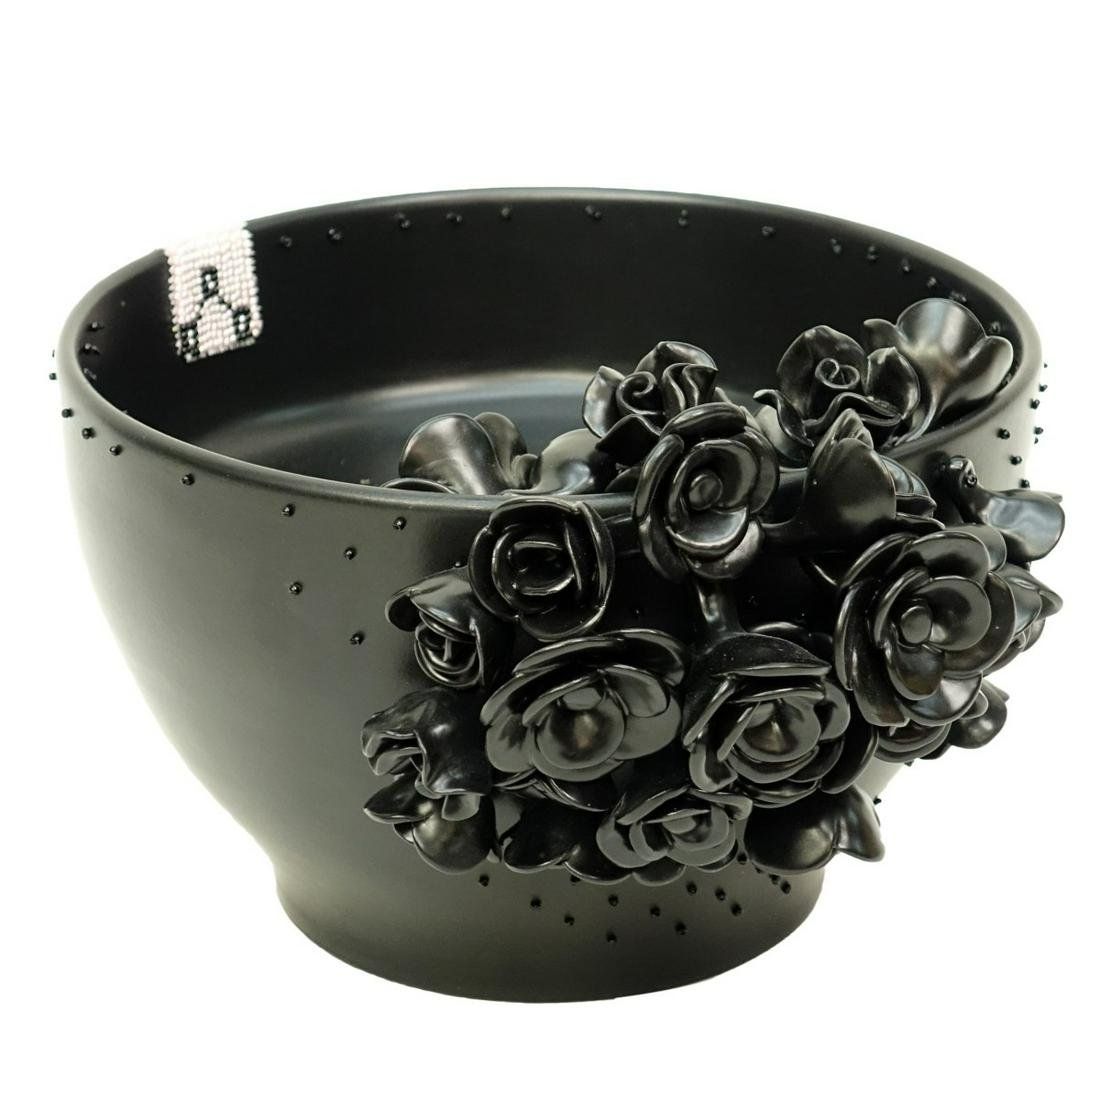 Artnenica Black Ceramic Bowl